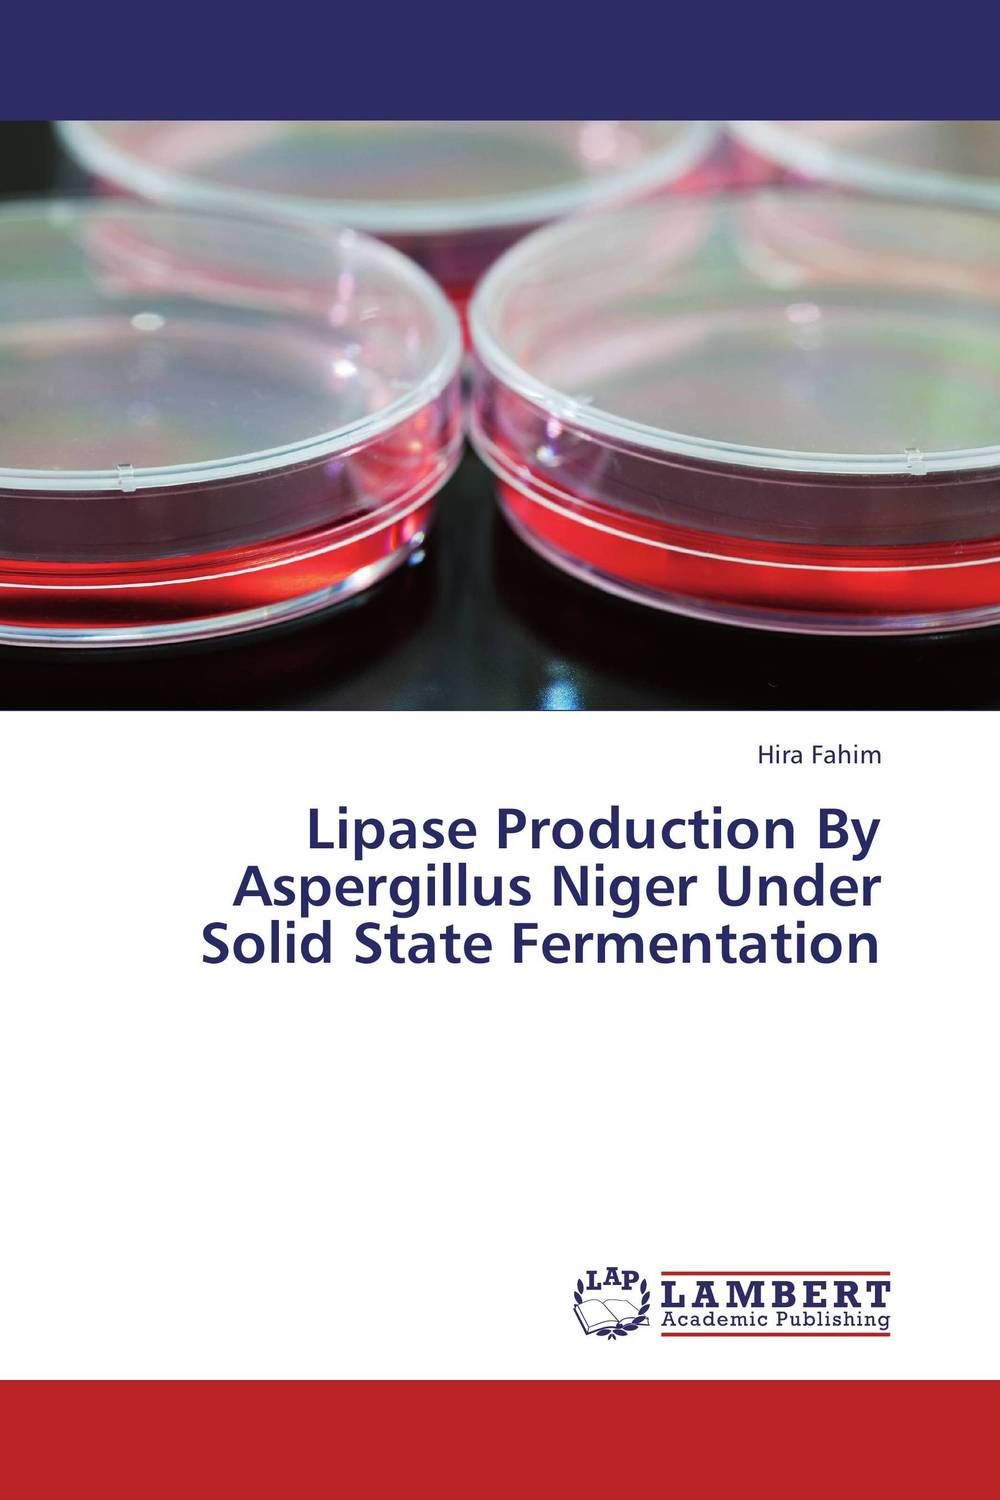 Lipase Production By Aspergillus Niger Under Solid State Fermentation augmented cellulase production by mutagenesis of trichoderma viride